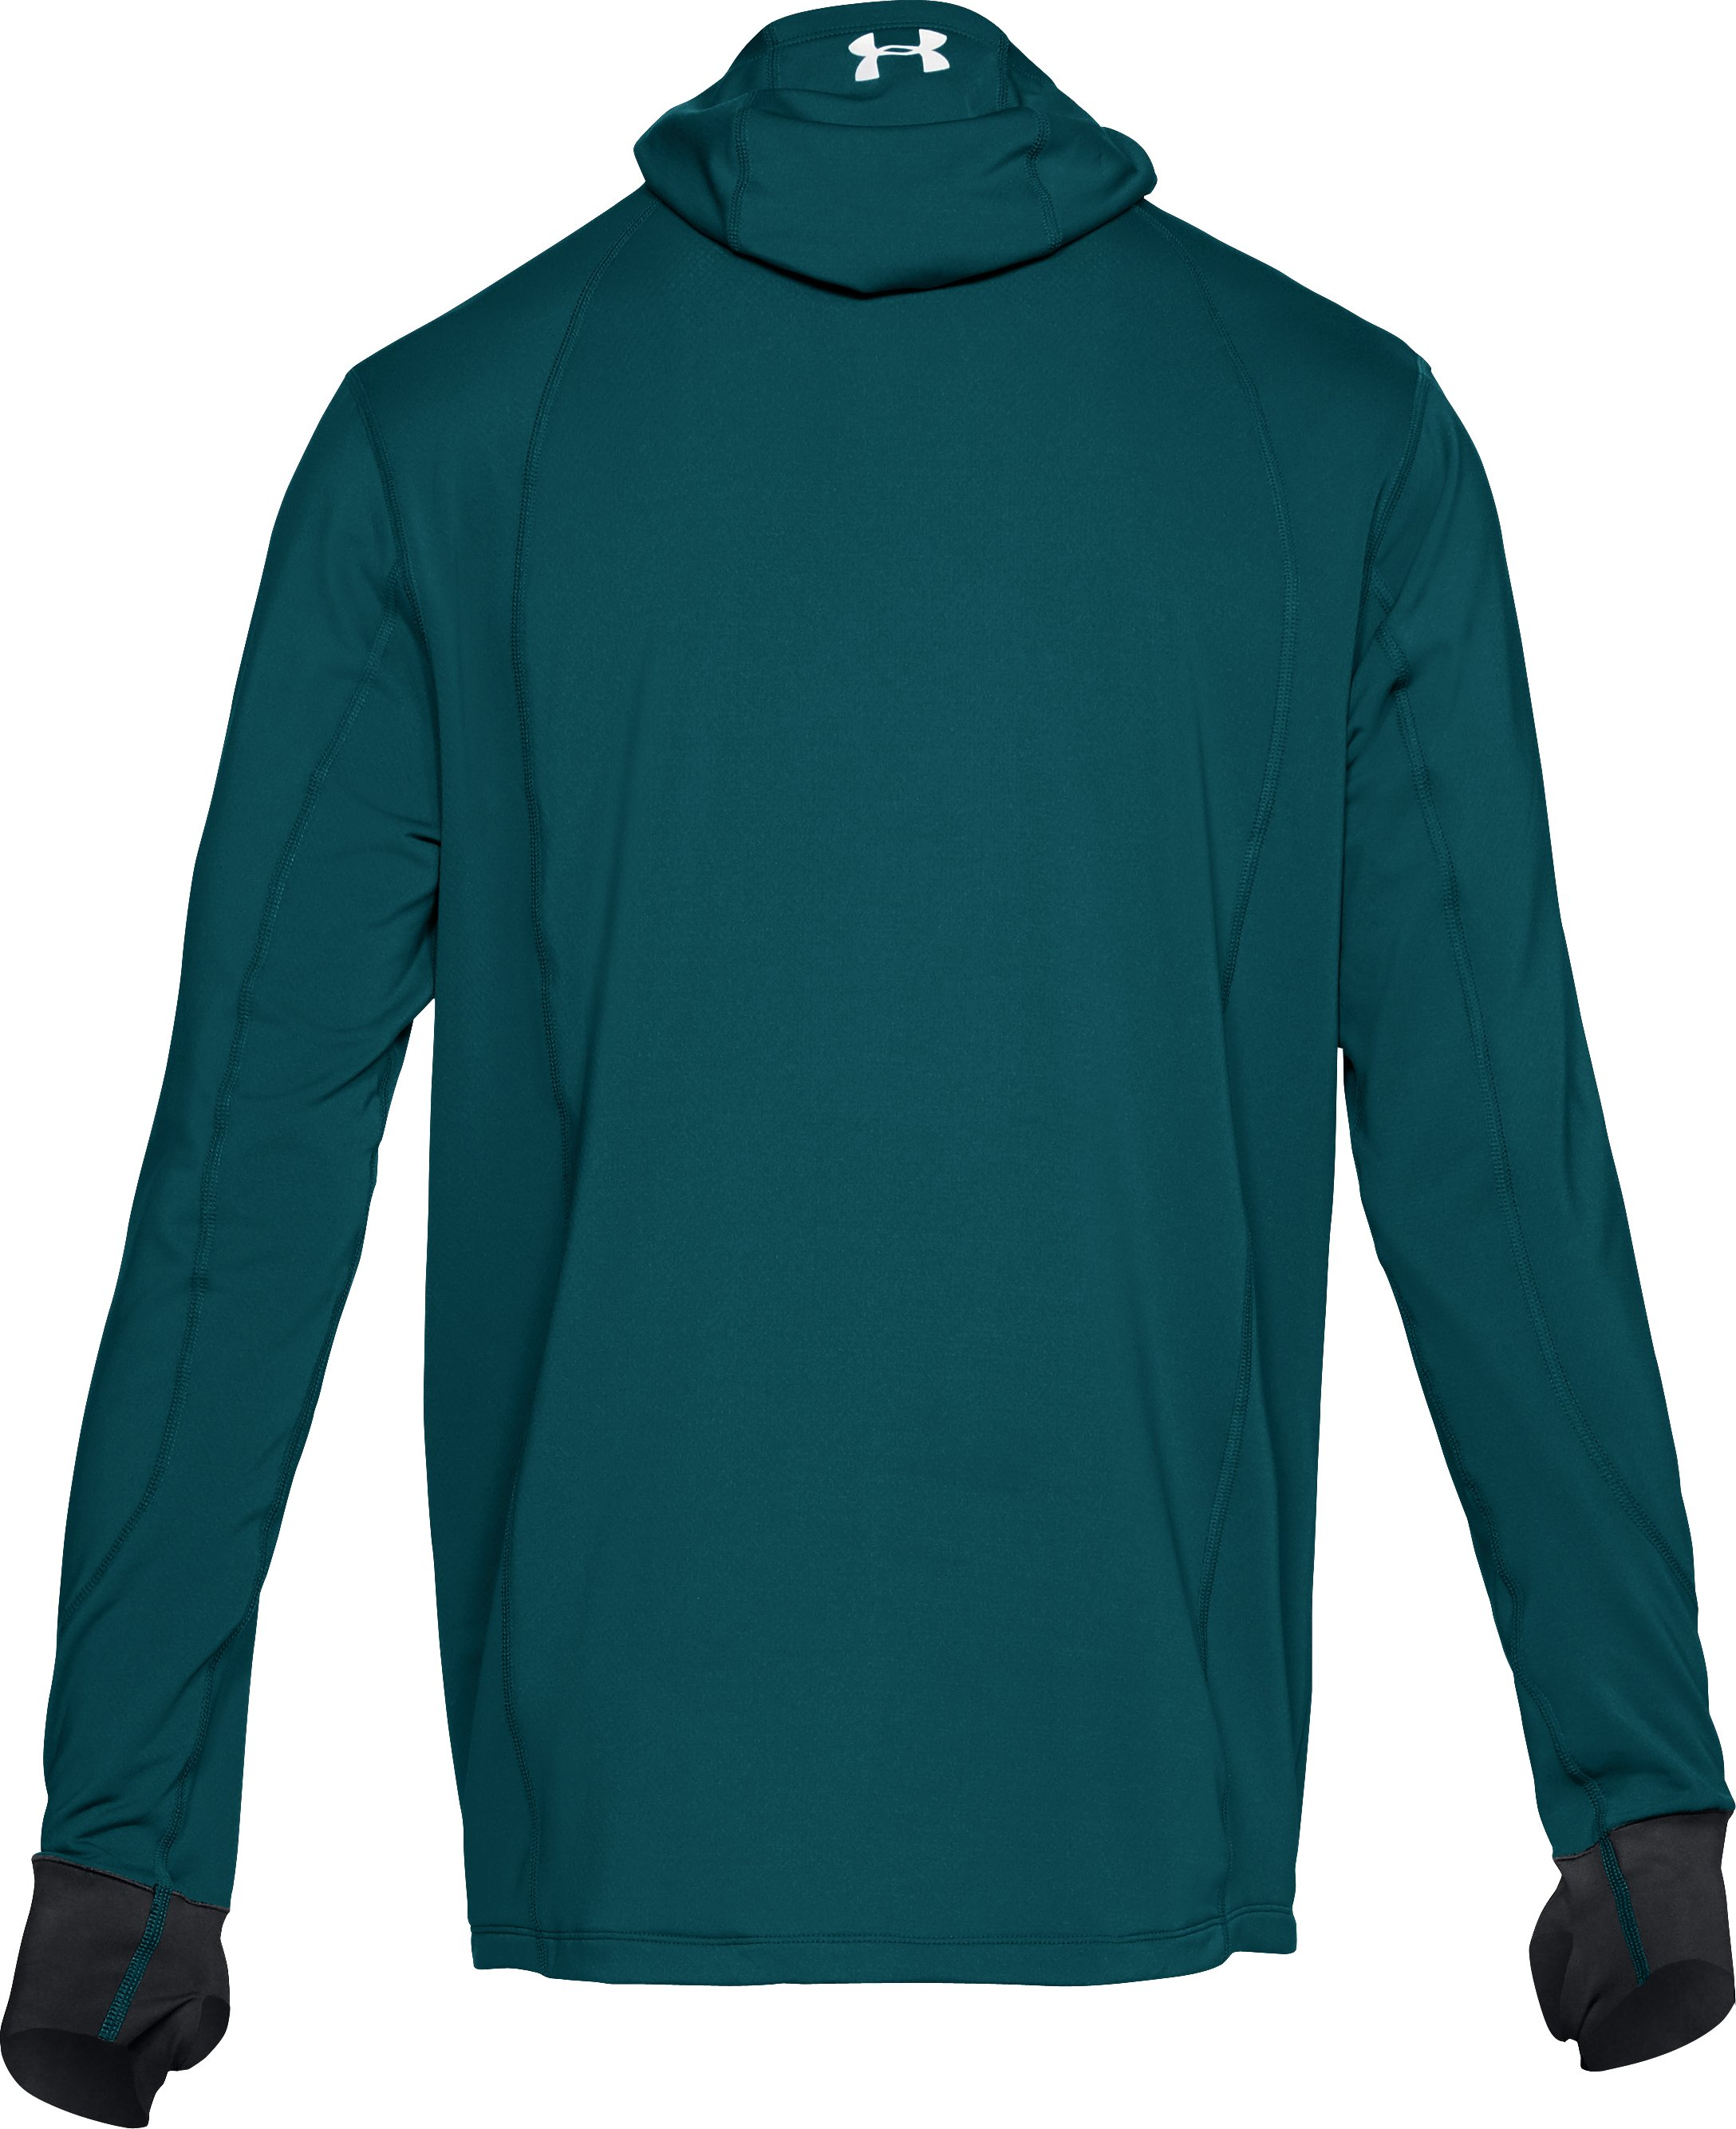 Men's ColdGear® Reactor Run Balaclava Hoodie, TOURMALINE TEAL, undefined